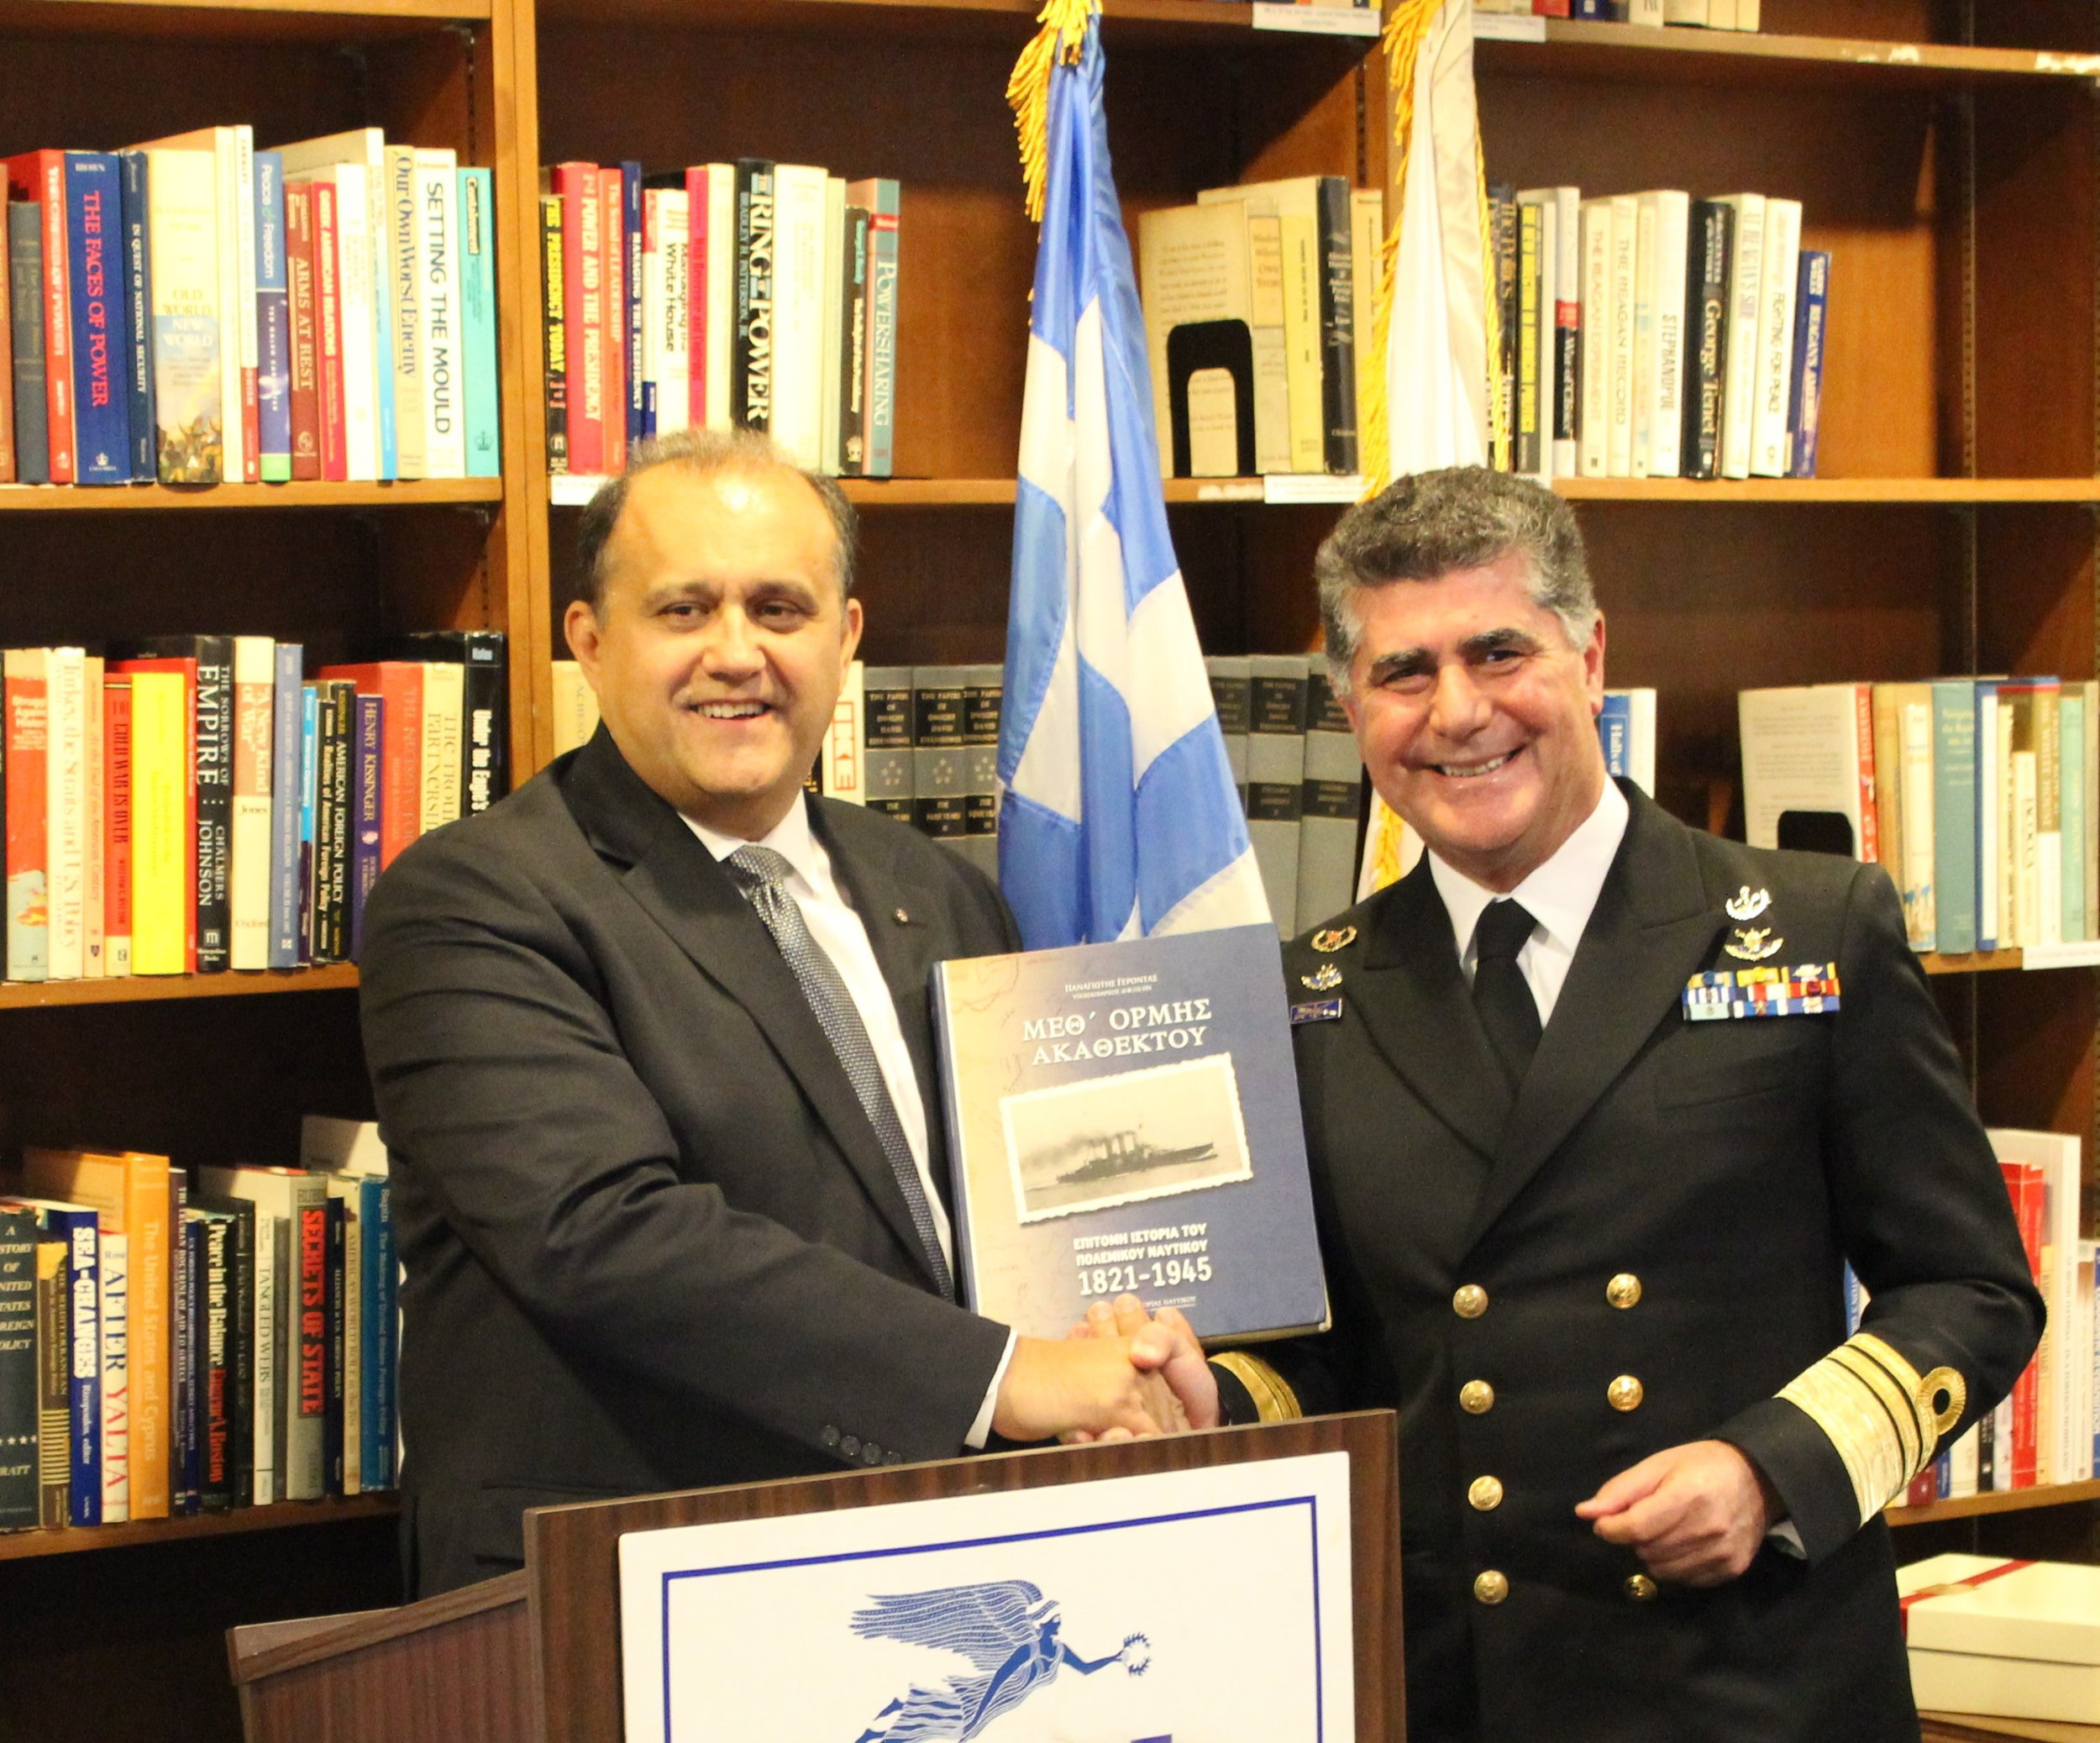 Vice Admiral Tsounis presents Nick Larigakis with a memento.